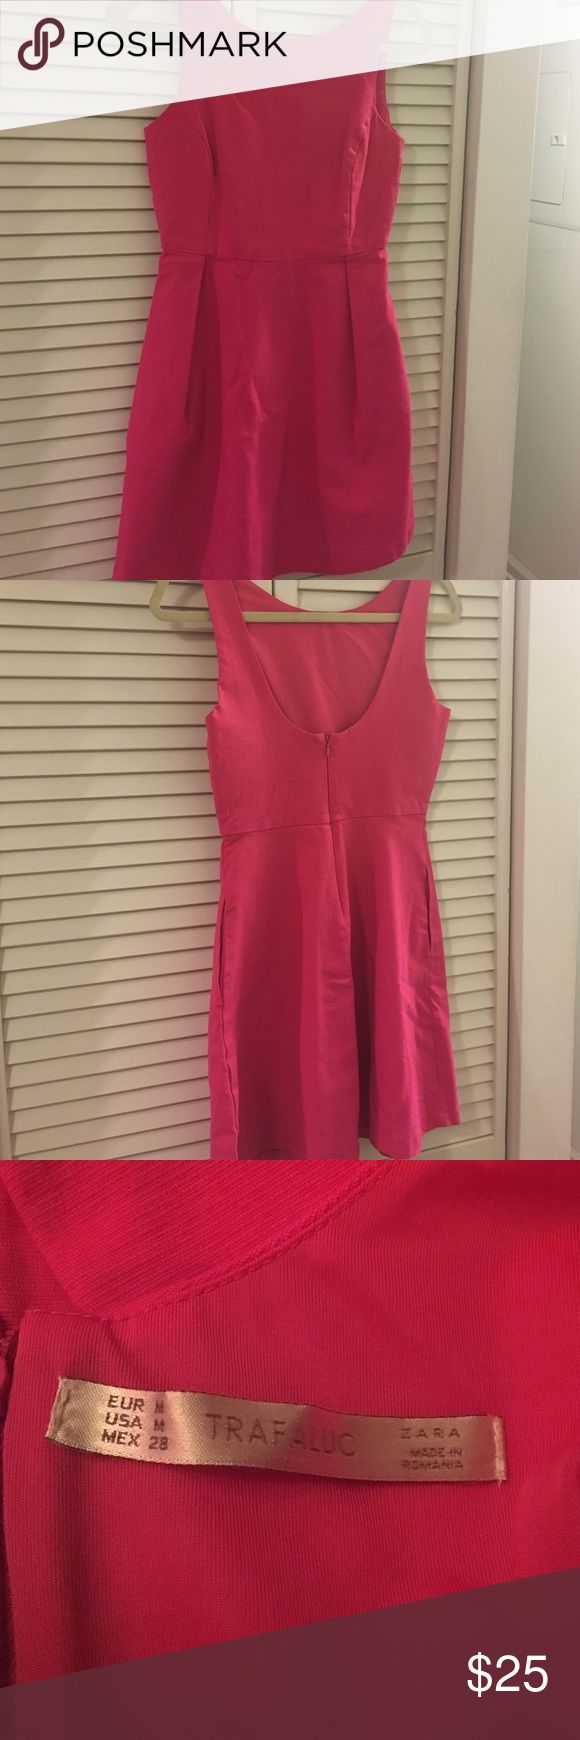 Dress Pink low back dress. Hits right above the knees. trafaluc Dresses